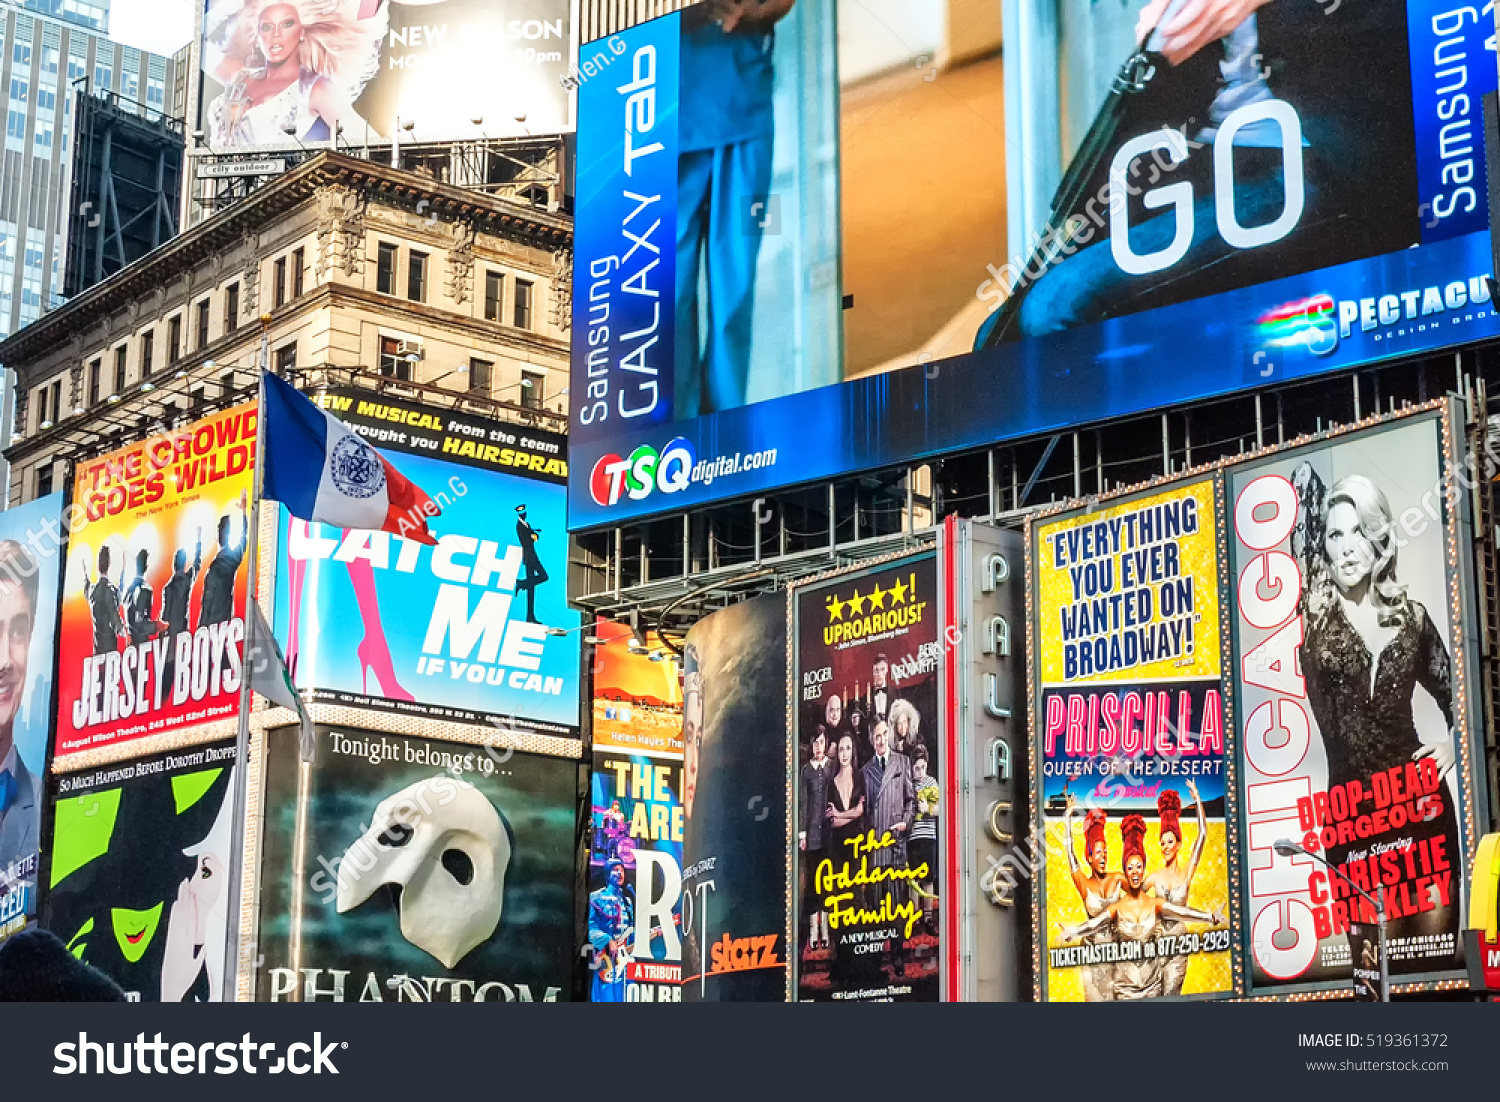 New york april 9 collage neon stock photo 519361372 shutterstock new york april 9 collage of neon lights street signs and advertisements at biocorpaavc Choice Image